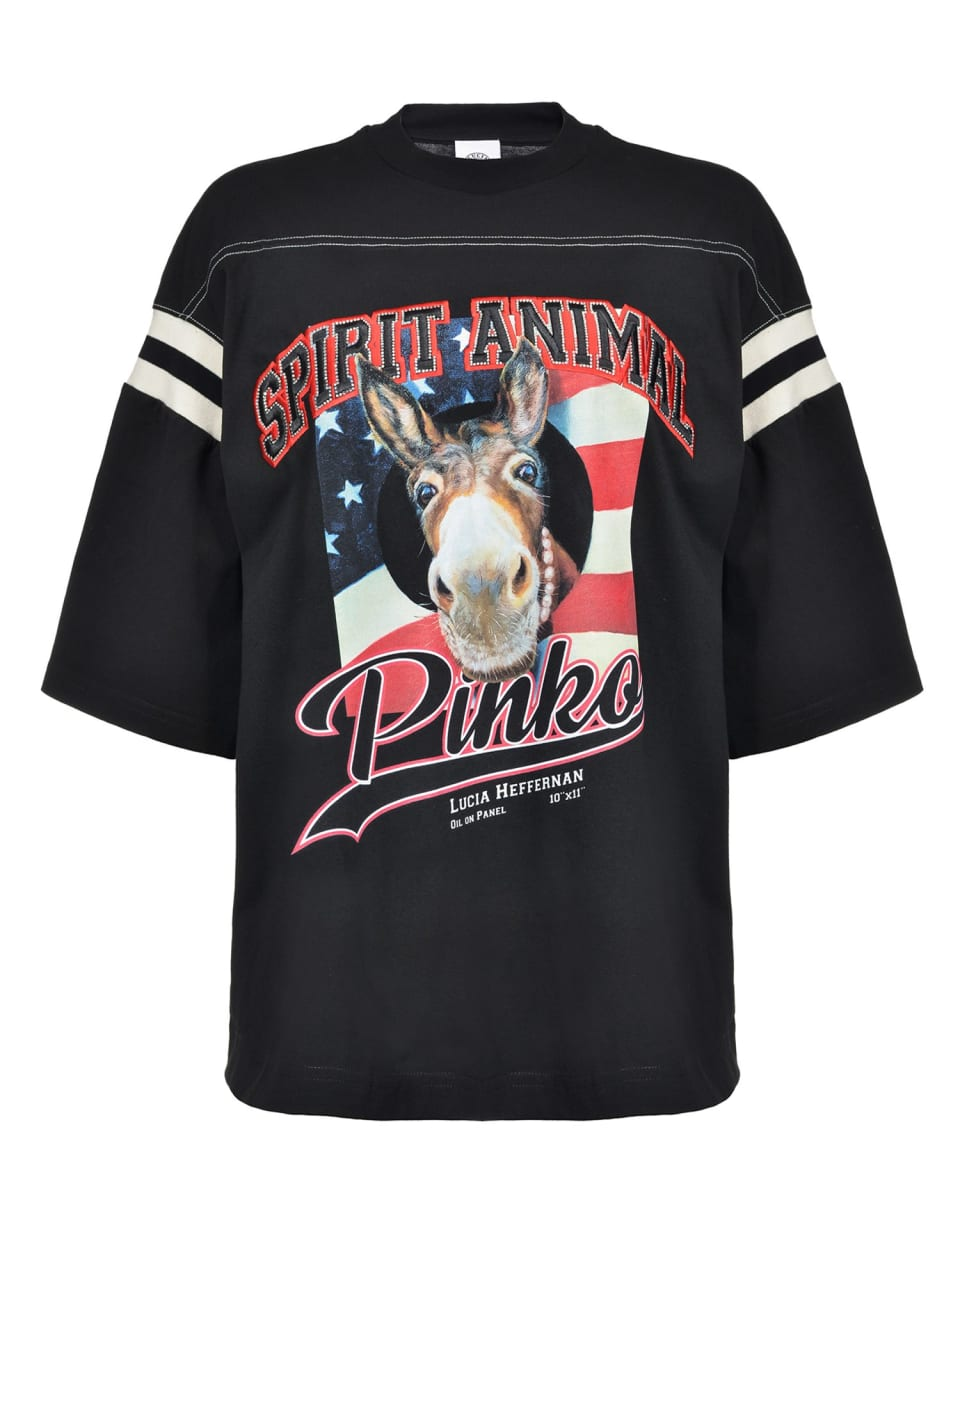 """Spirit Animal"" T-shirt - Pinko"